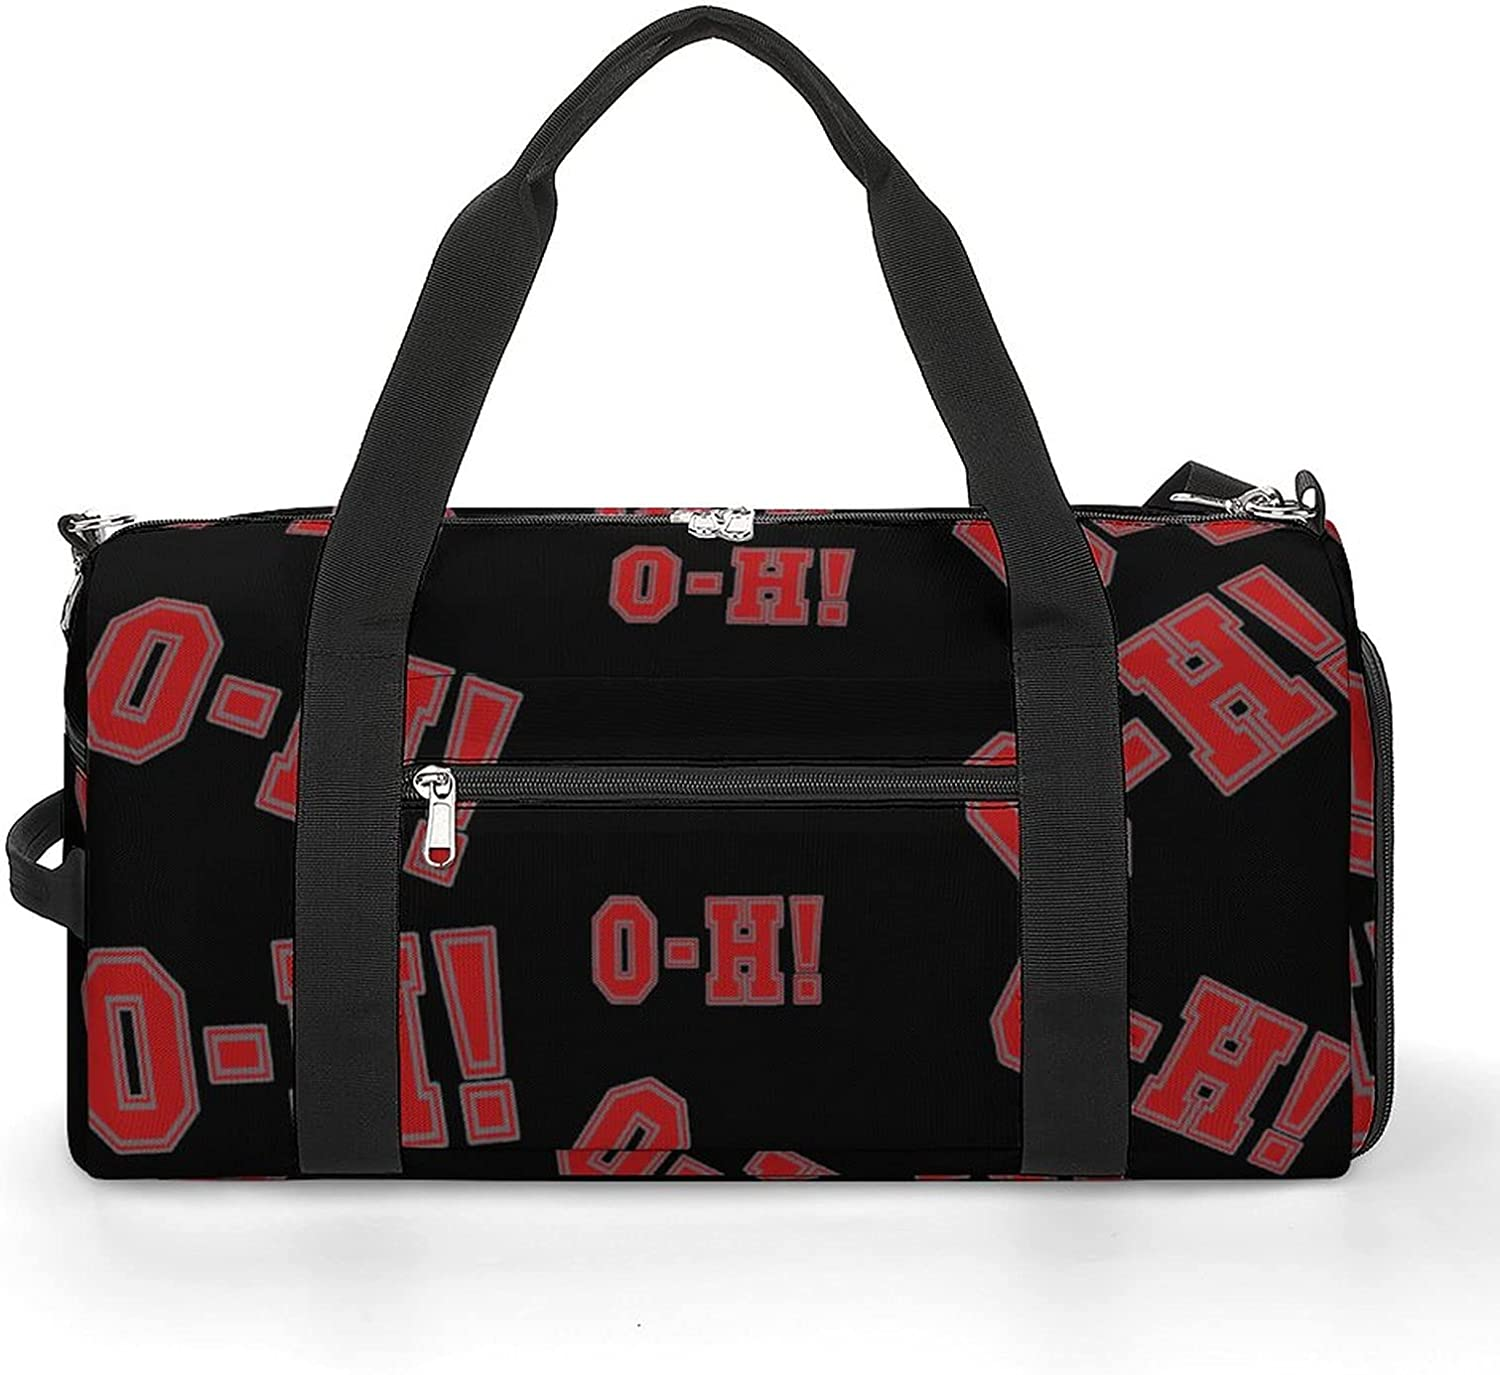 Funny Ohio State O-H Sports Gym Max 76% OFF With Bag Shoes Compartment Light Brand Cheap Sale Venue